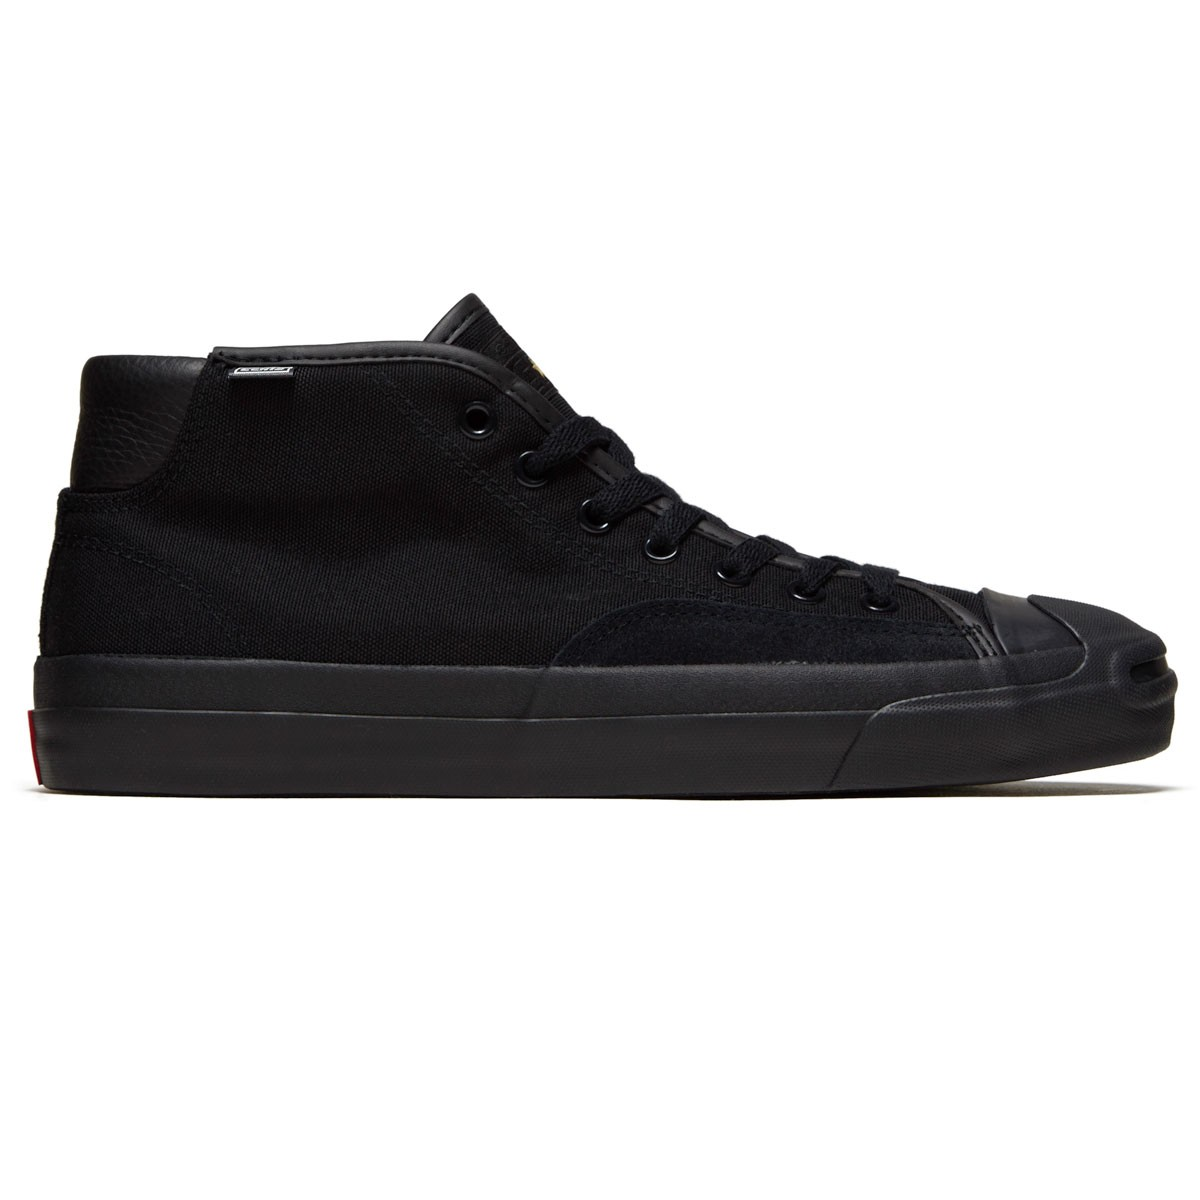 Converse Jack Purcell Pro Mid Shoes